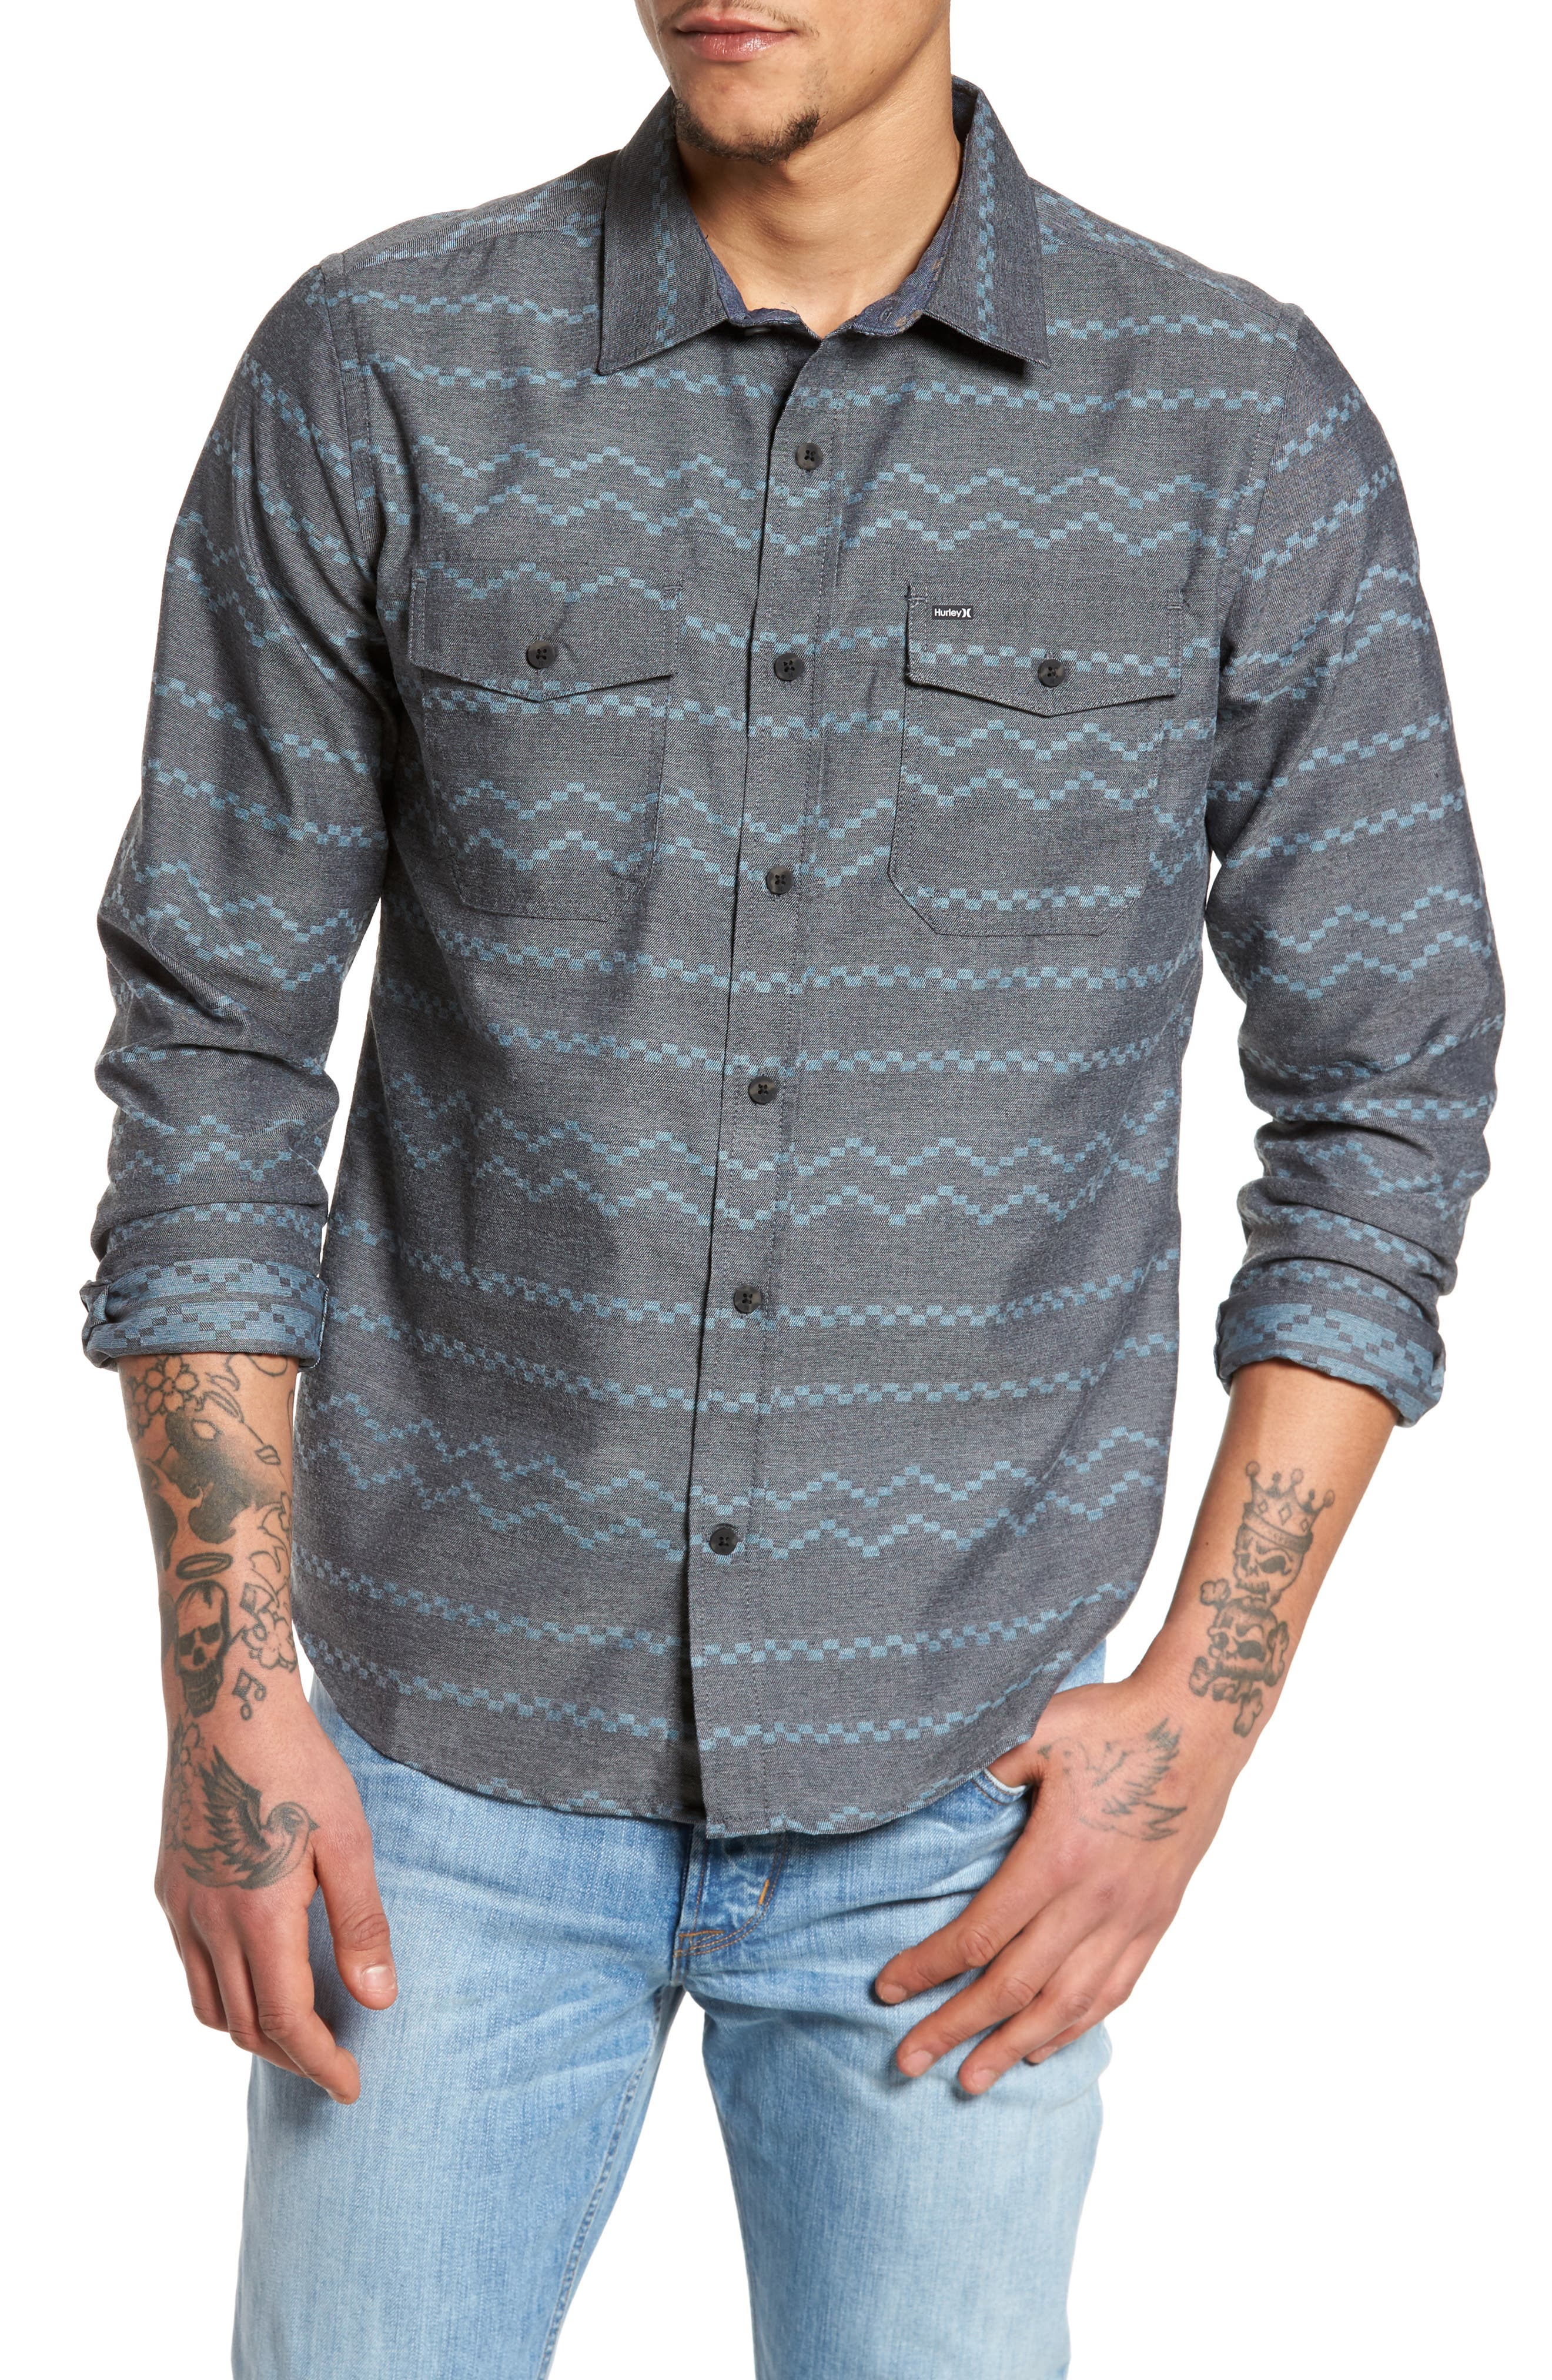 Pismo Dry Flannel Shirt,                             Main thumbnail 1, color,                             Black